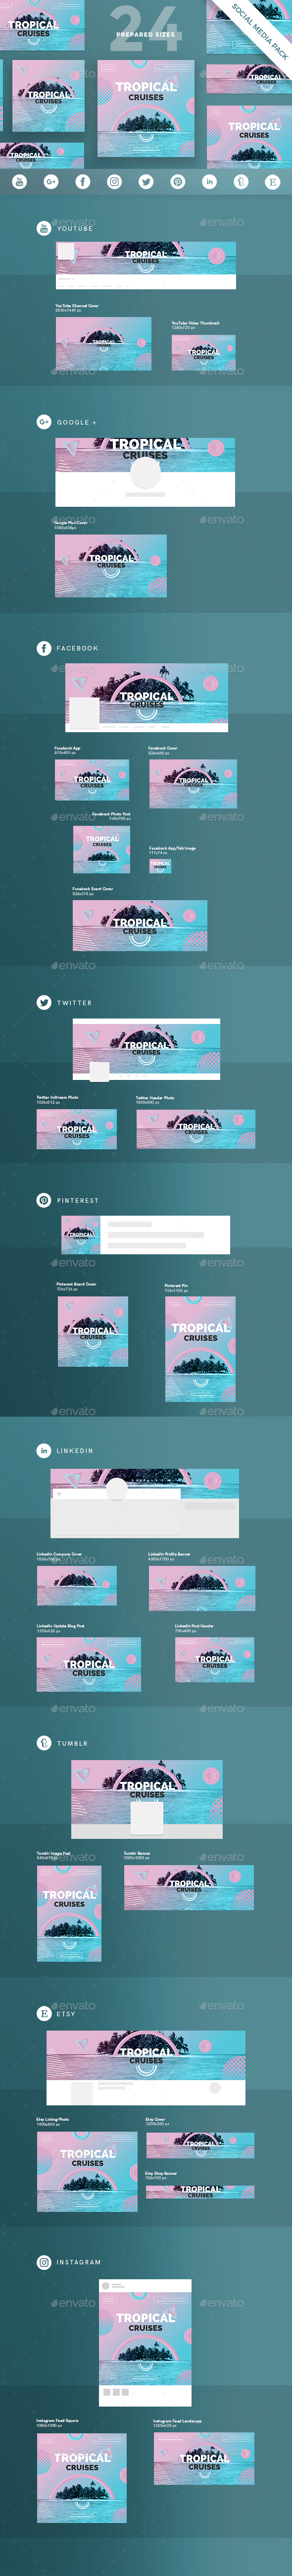 GraphicRiver Tropical Cruises Social Media Pack 21154451